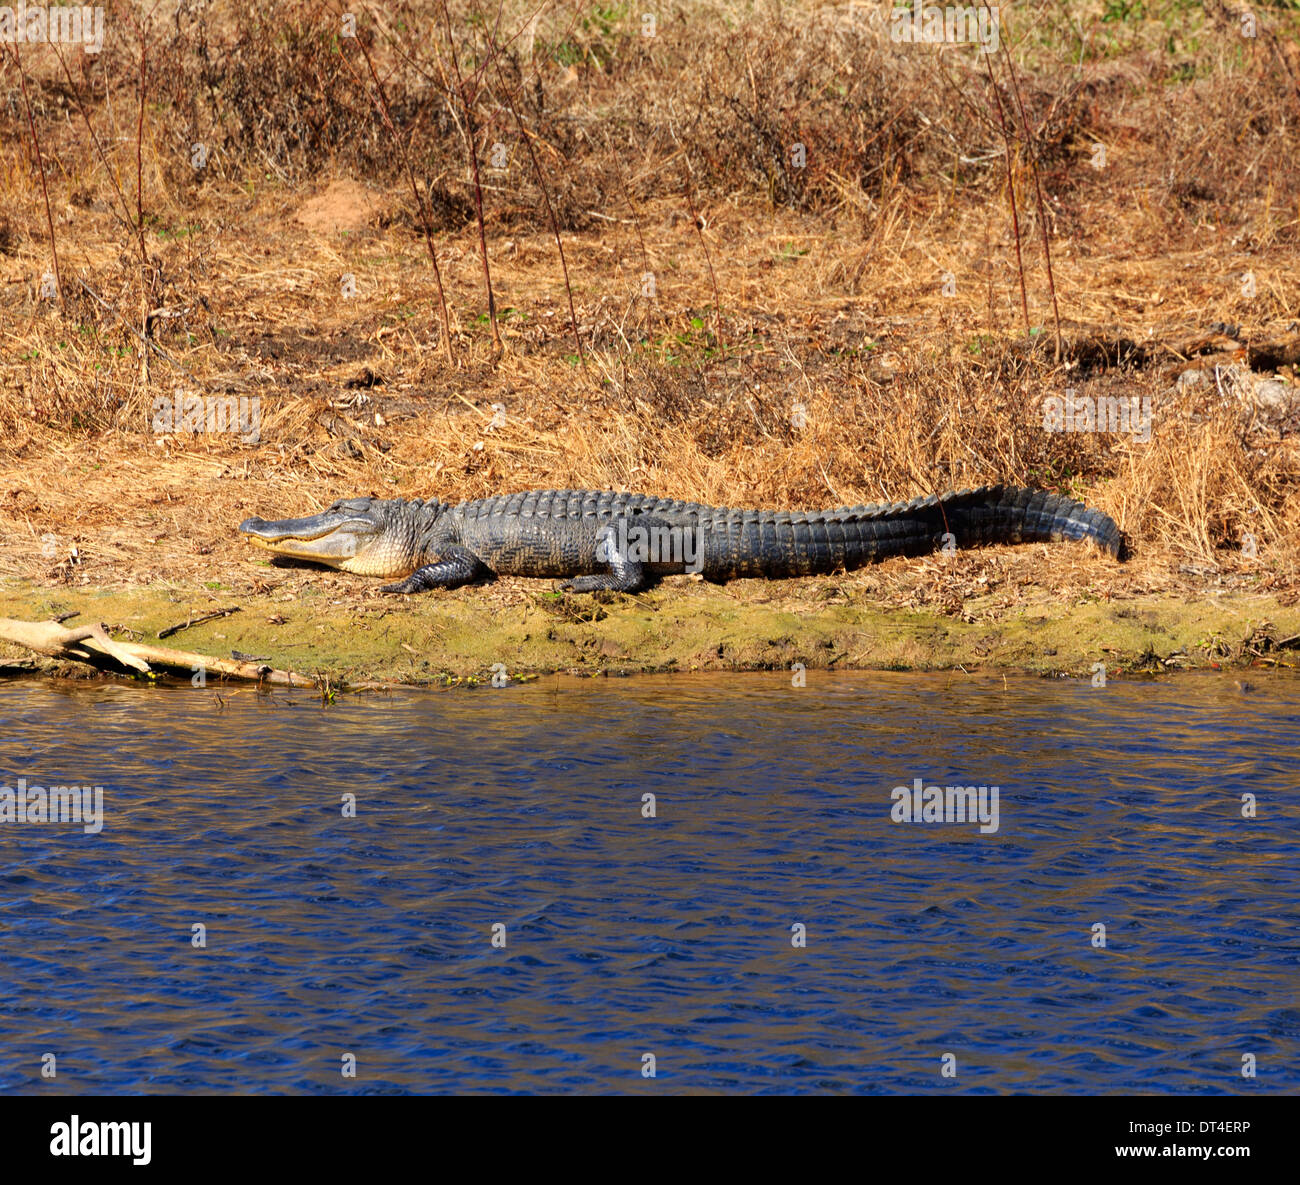 American alligator (Alligator mississippiensis), basking in winter sun at Brazos Bend State Park, Texas - Stock Image